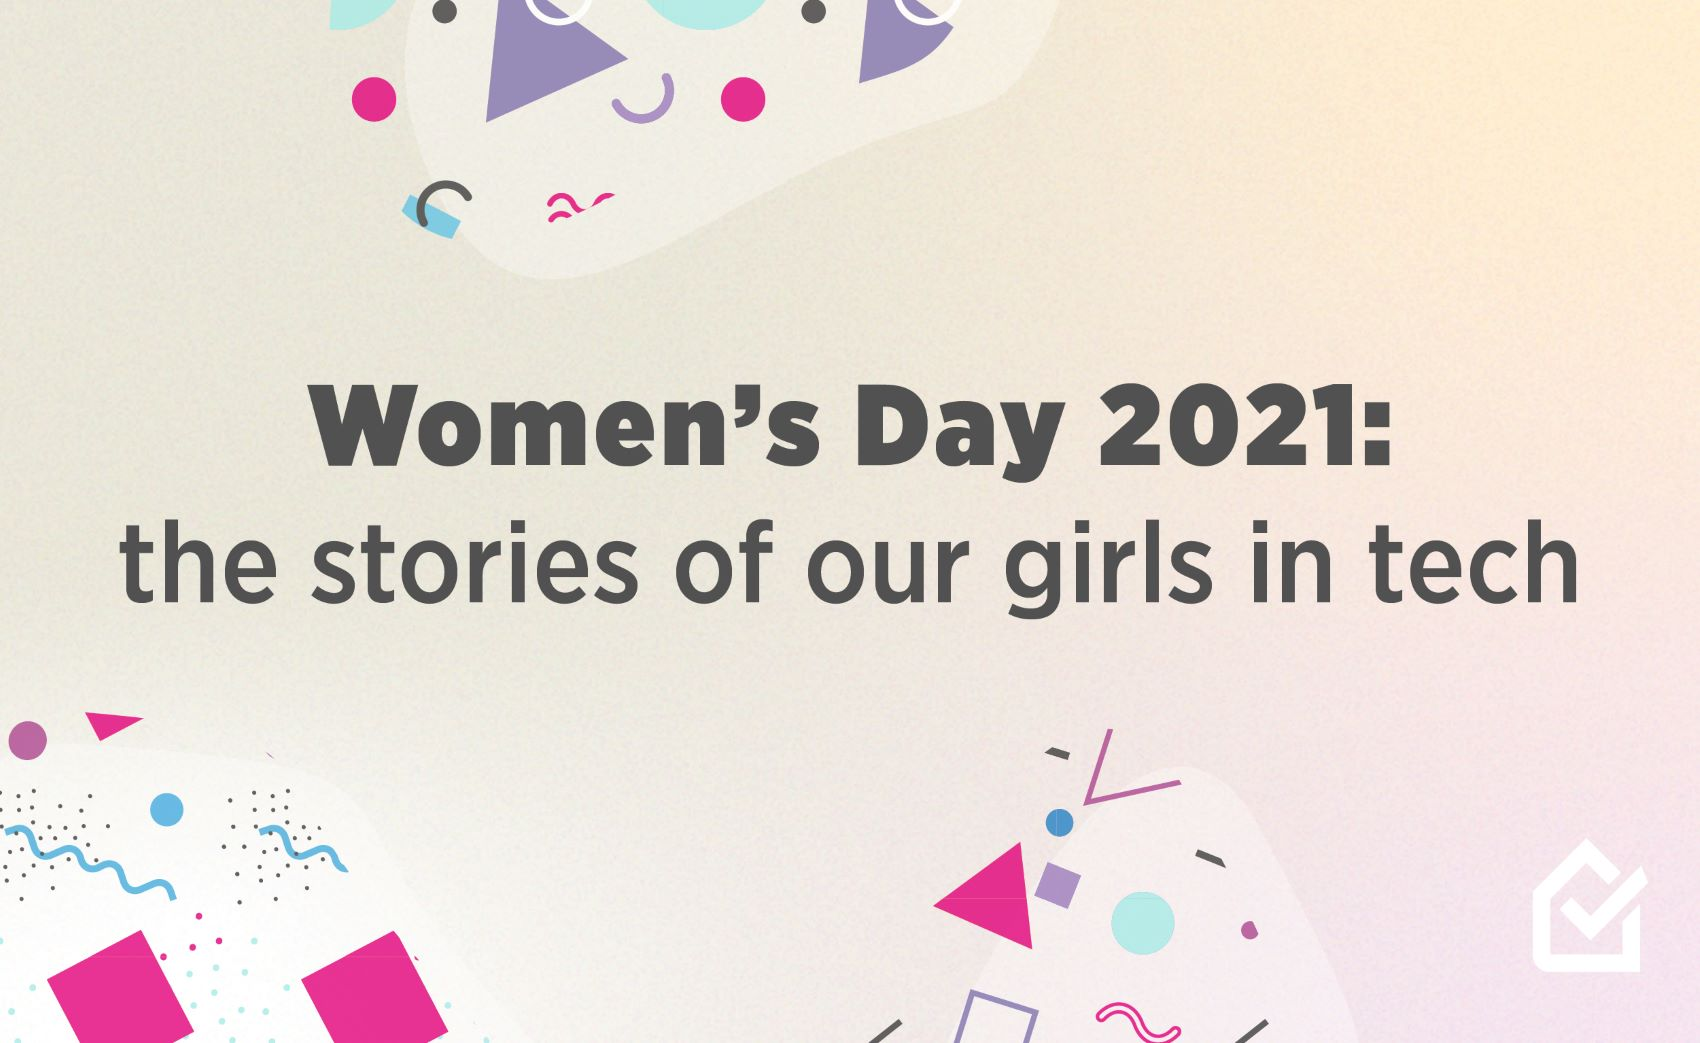 Women's Day 2021: the stories of our girls in tech